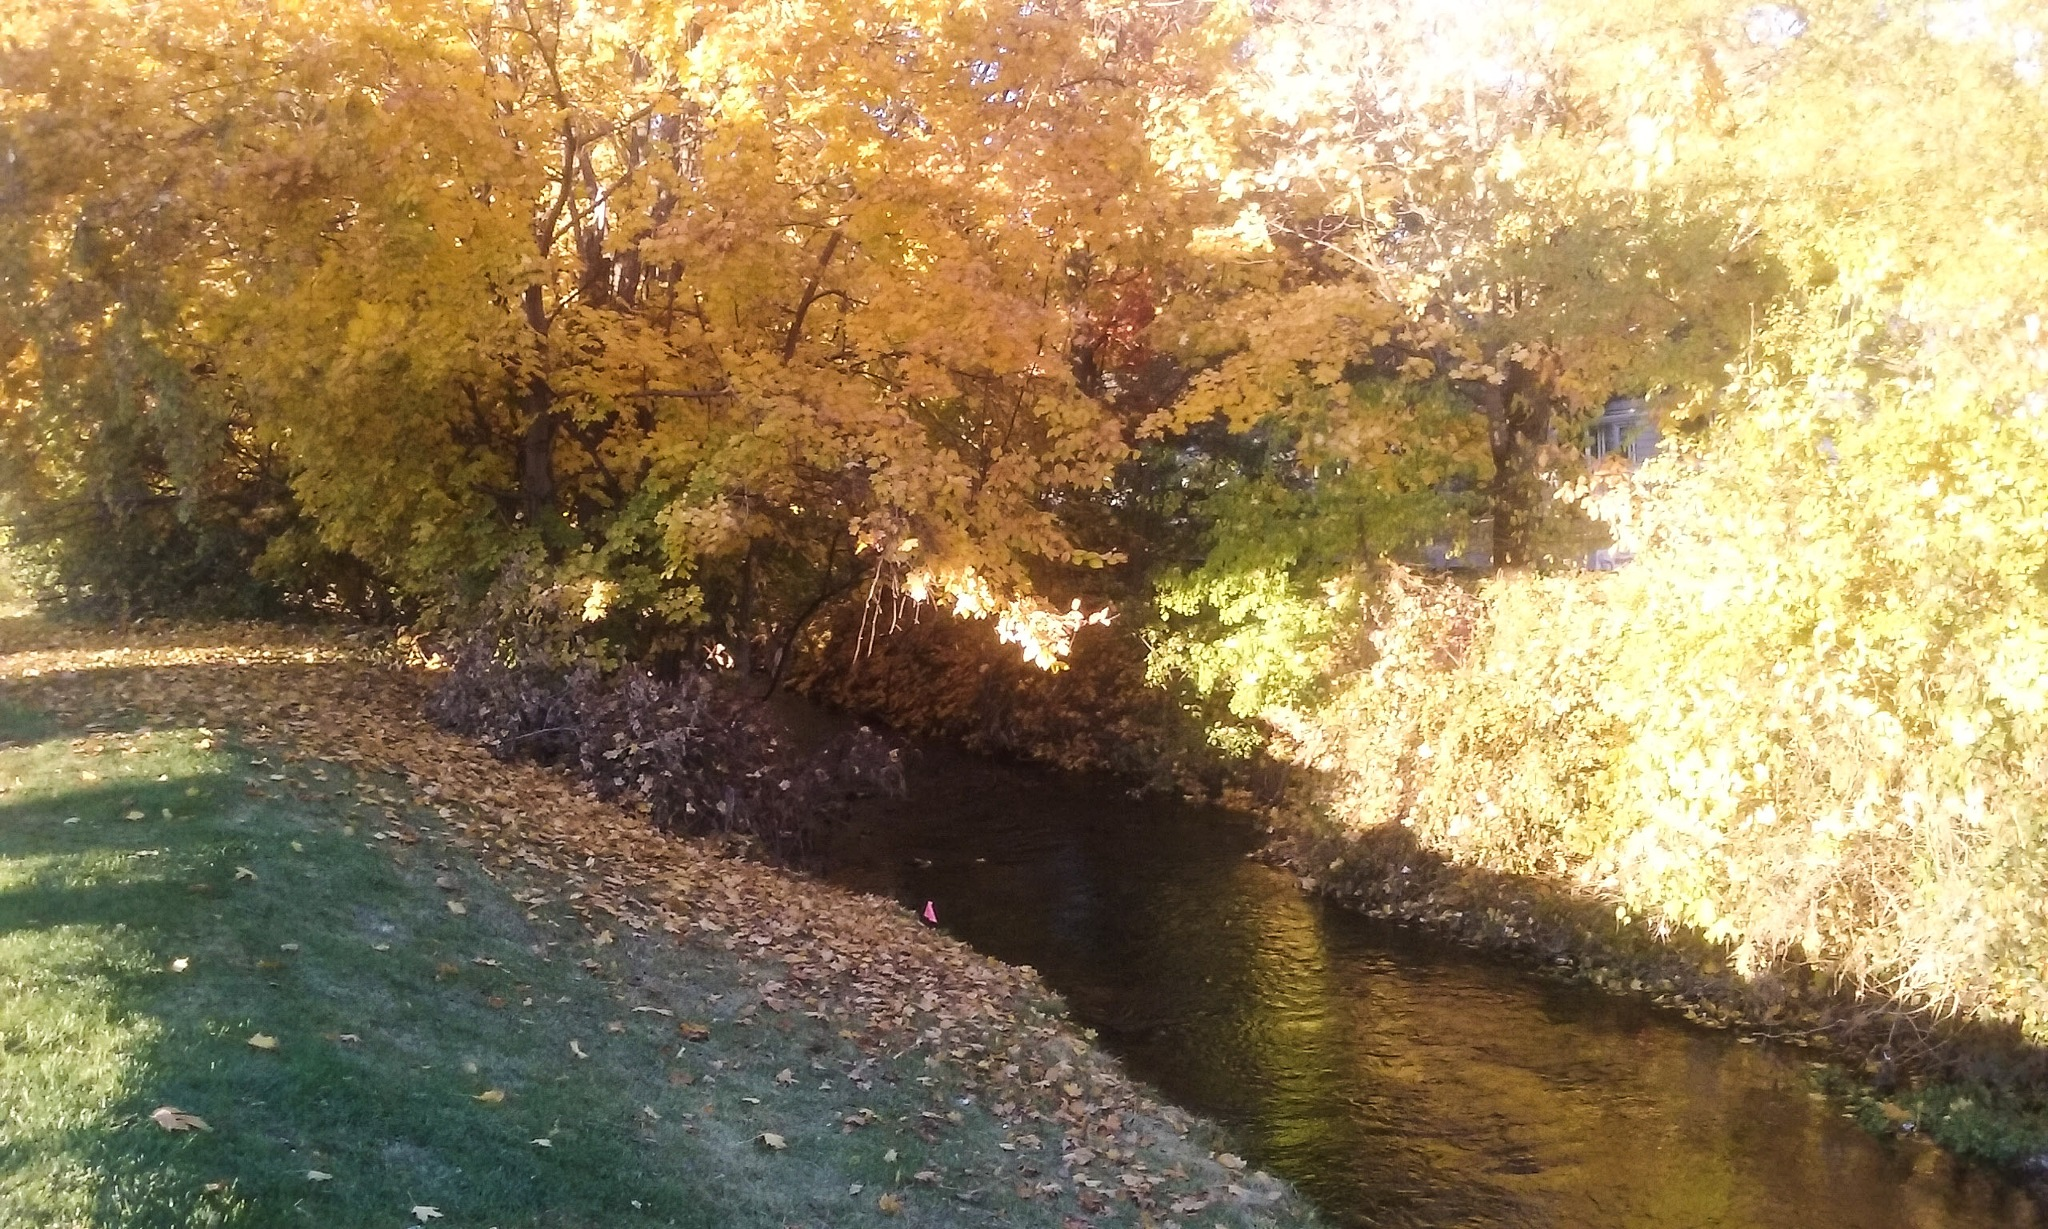 By The Beautiful Stream by Mark Morrison-LeMay